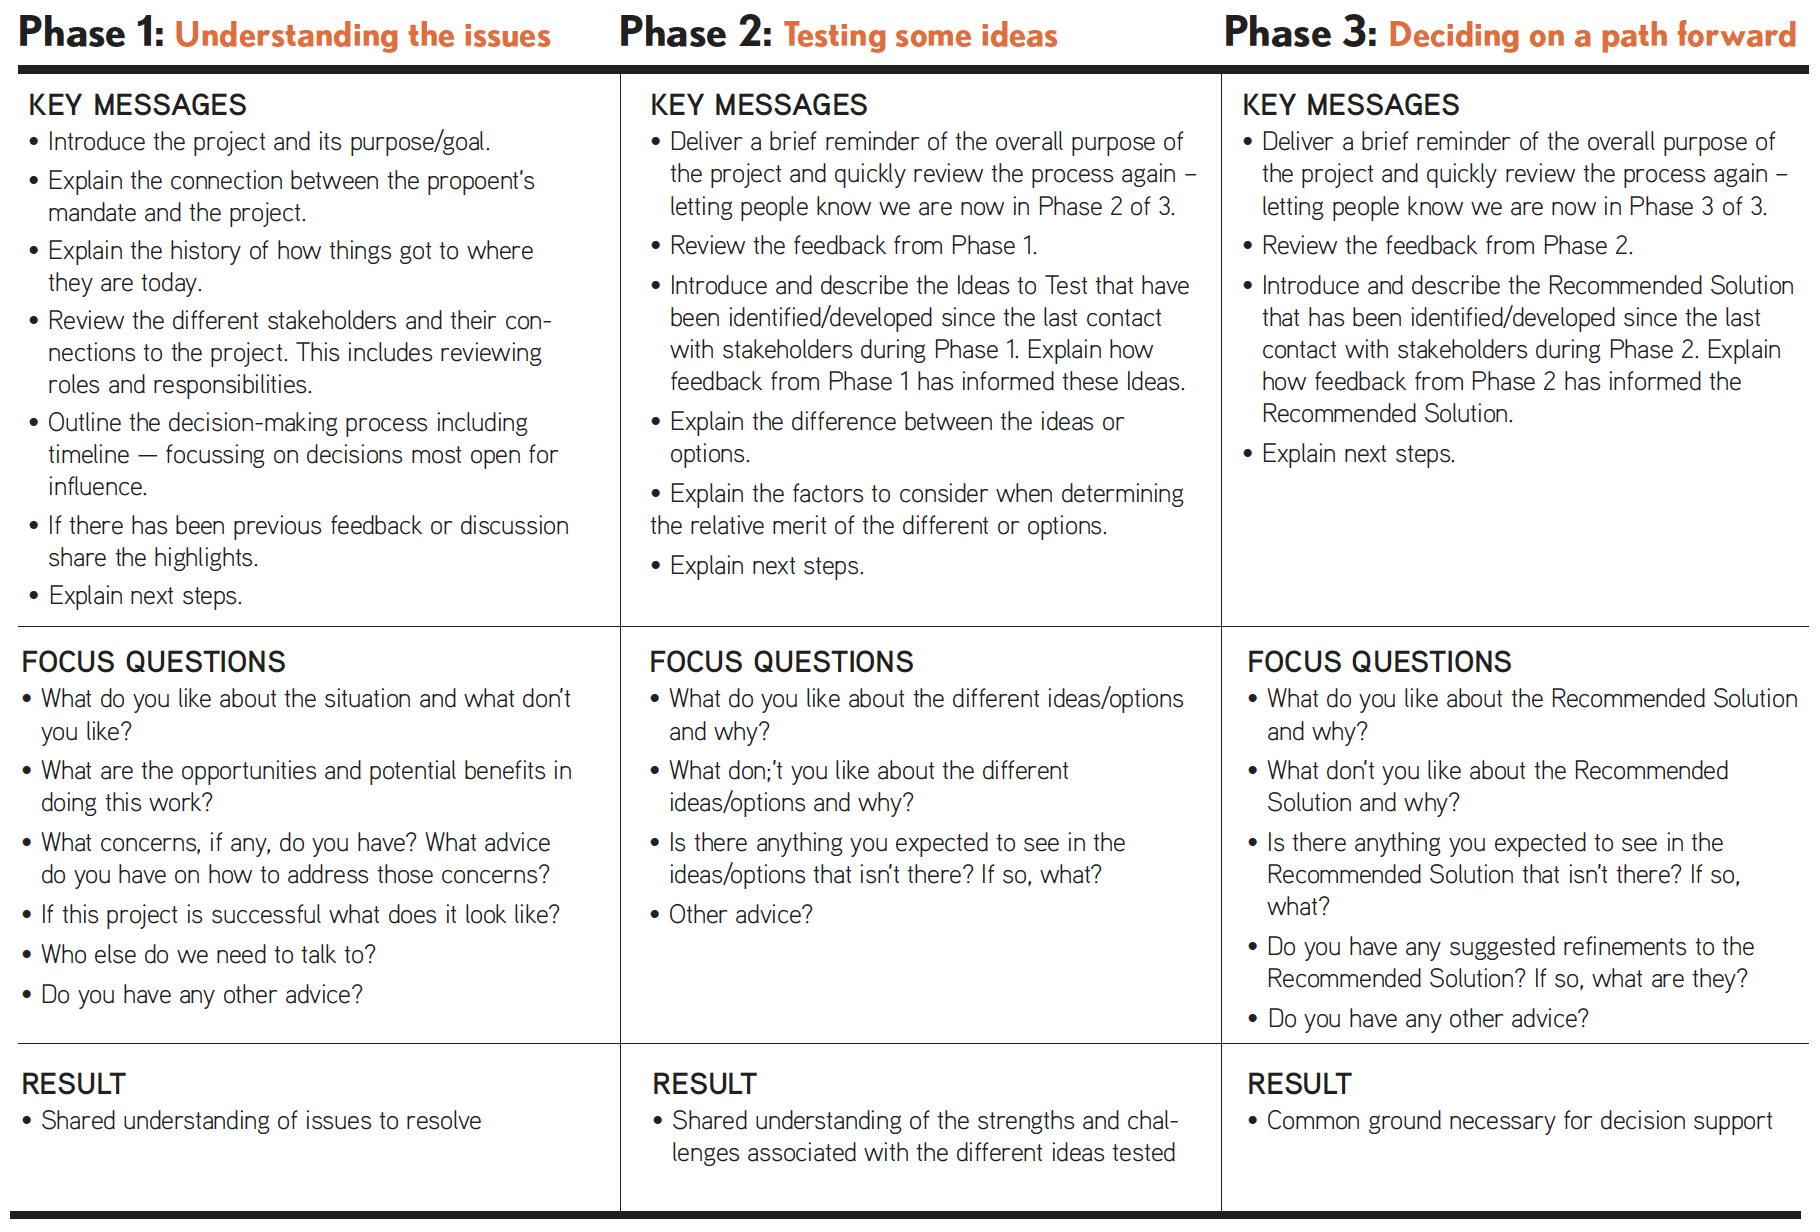 Picture of examples of typical key messages, focus questions, and result. The key messages, focus questions, and result are organized by the three phases of packaging the work.